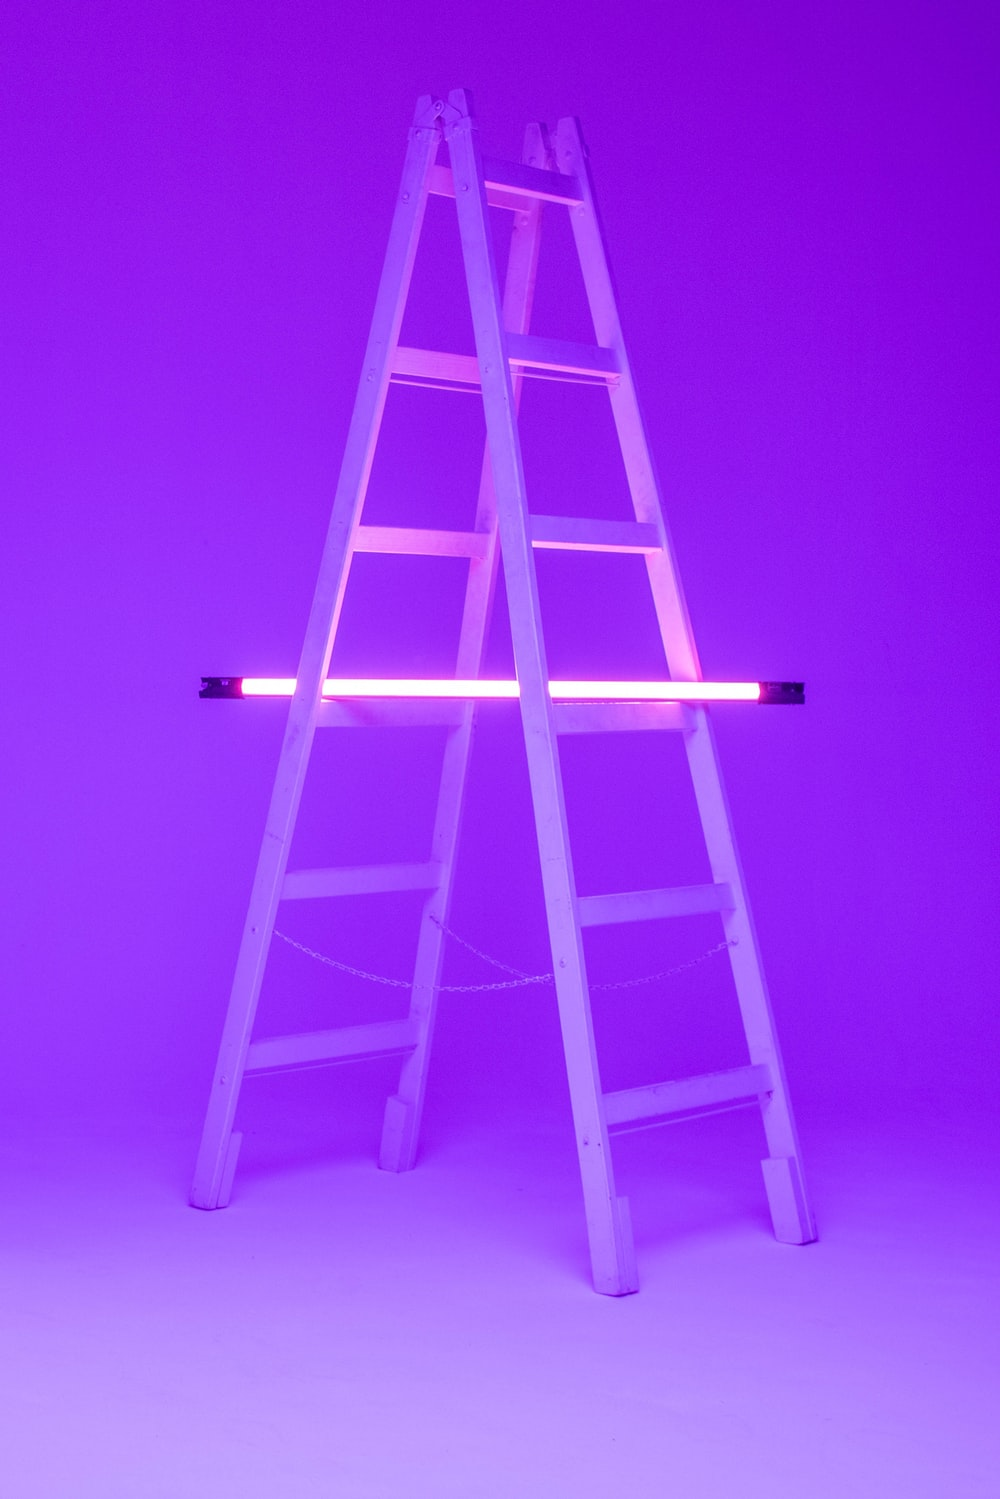 turned-on fluorescent lamp on folding ladder